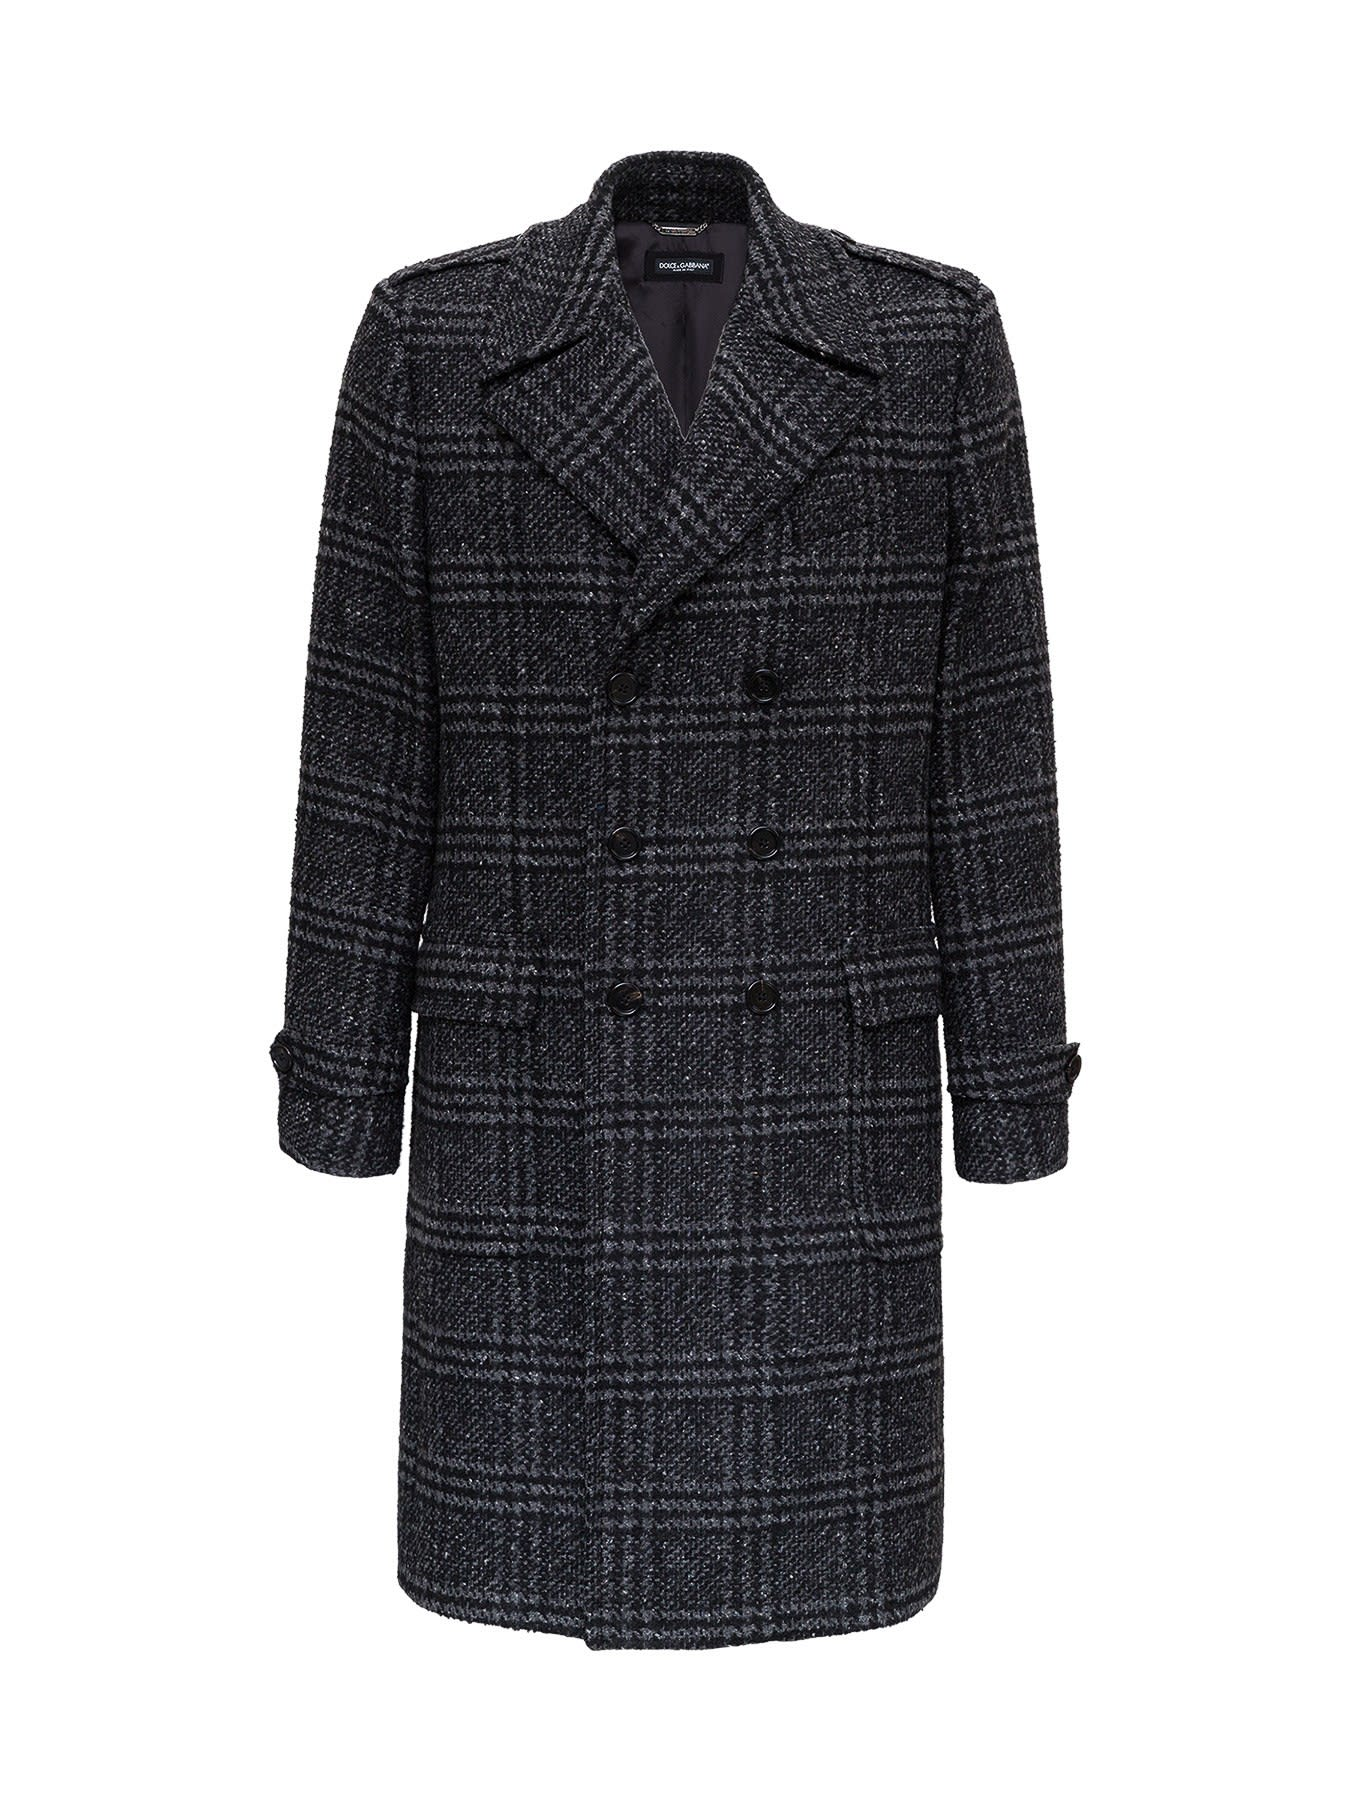 Dolce & Gabbana WOOLEN DOUBLE-BREASTED COAT WITH CHECK PATTERN